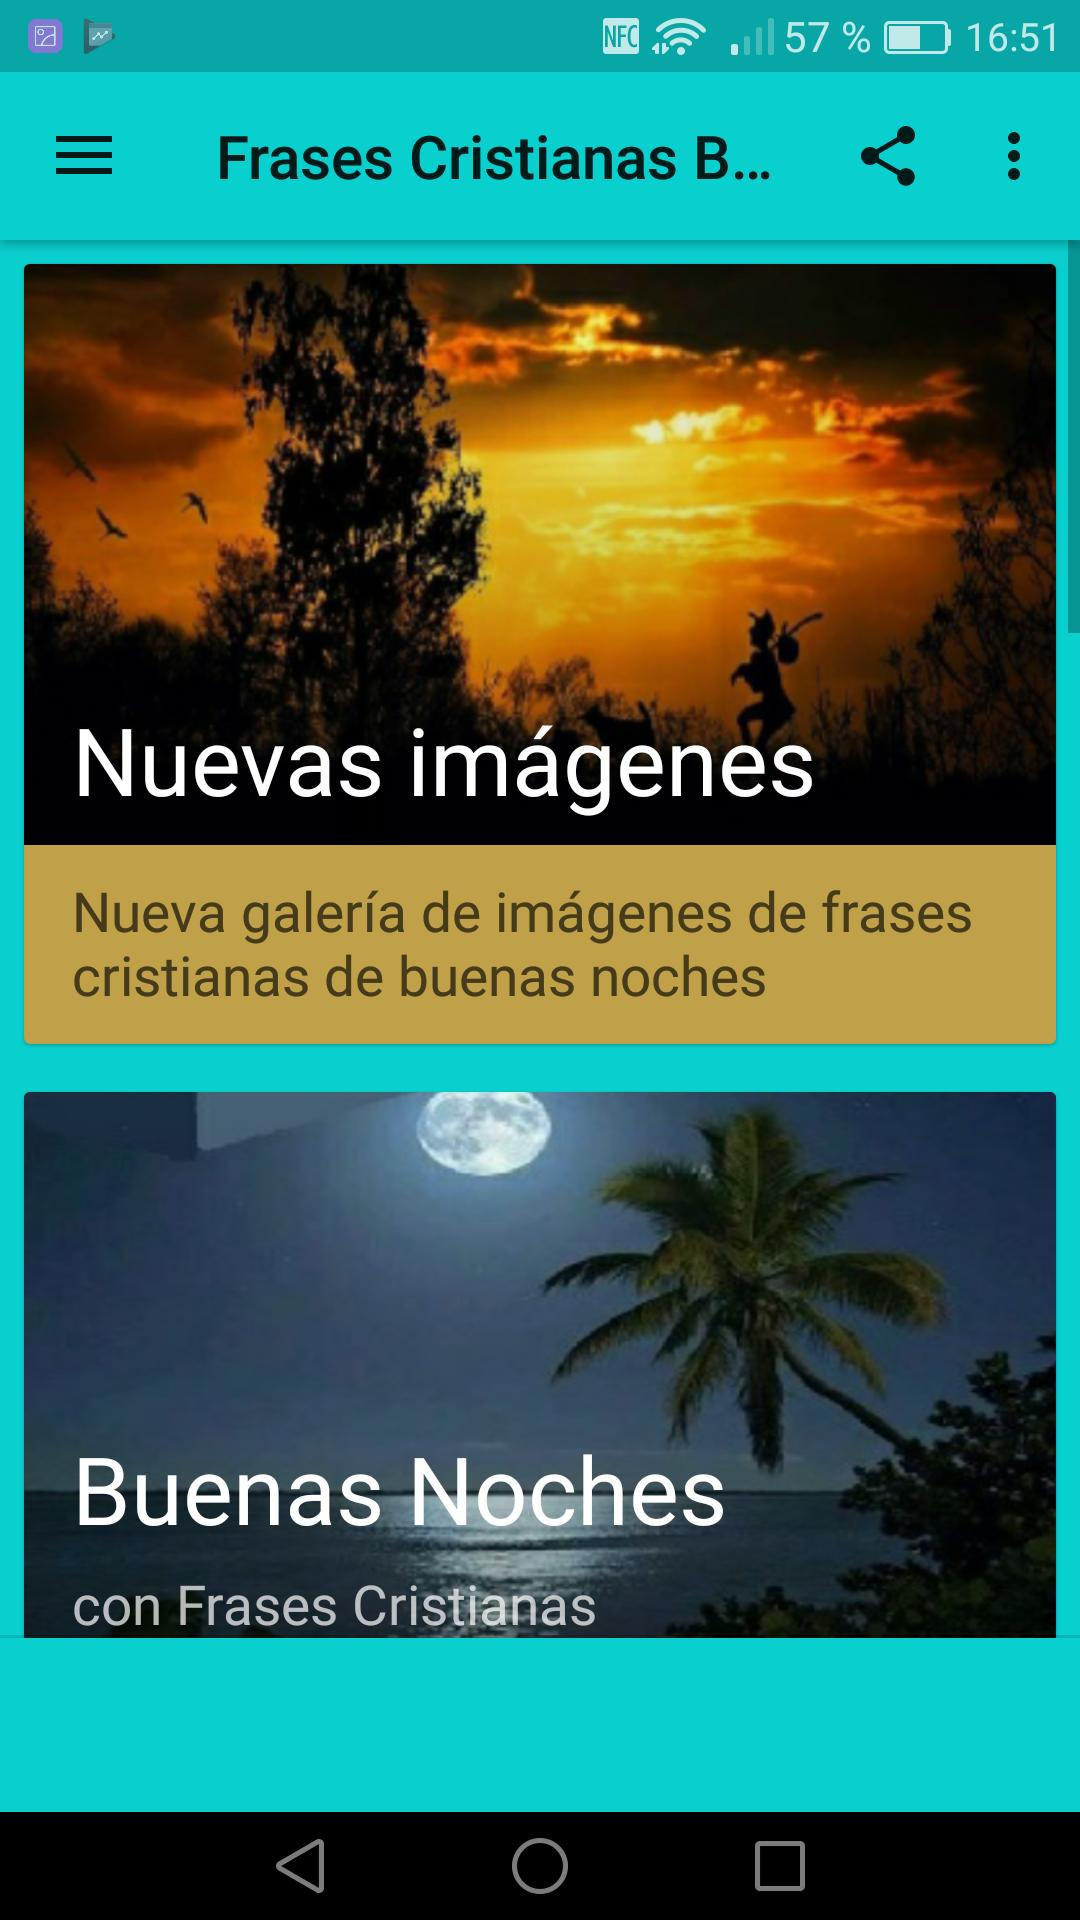 Frases Cristianas De Buenas Noches For Android Apk Download